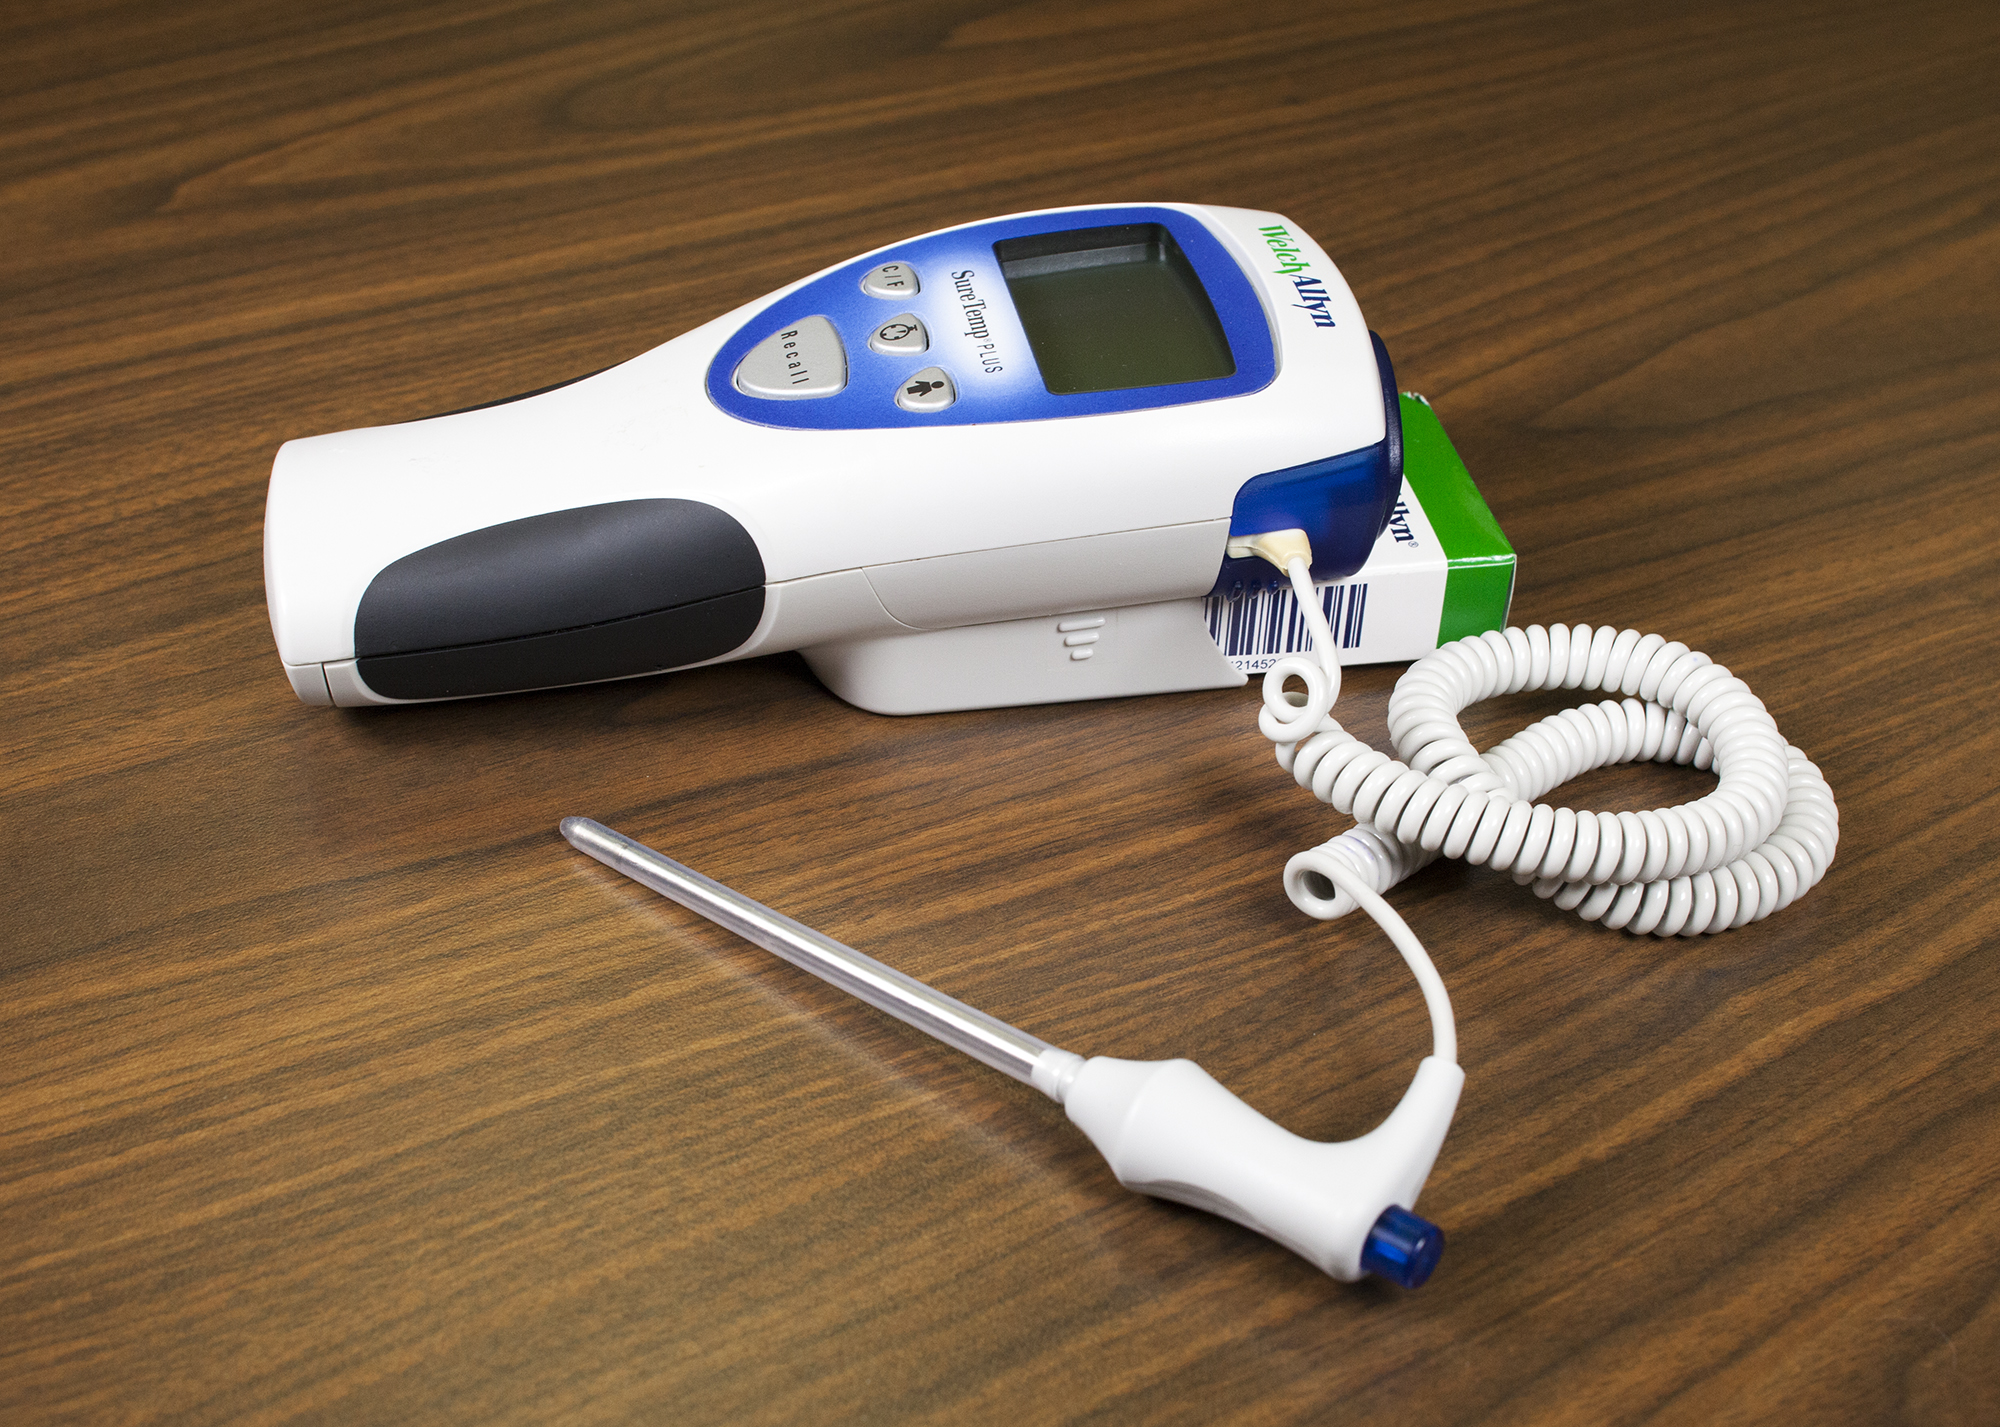 Oral thermometer that shows the blue end on the device and the probe with probe cover on.